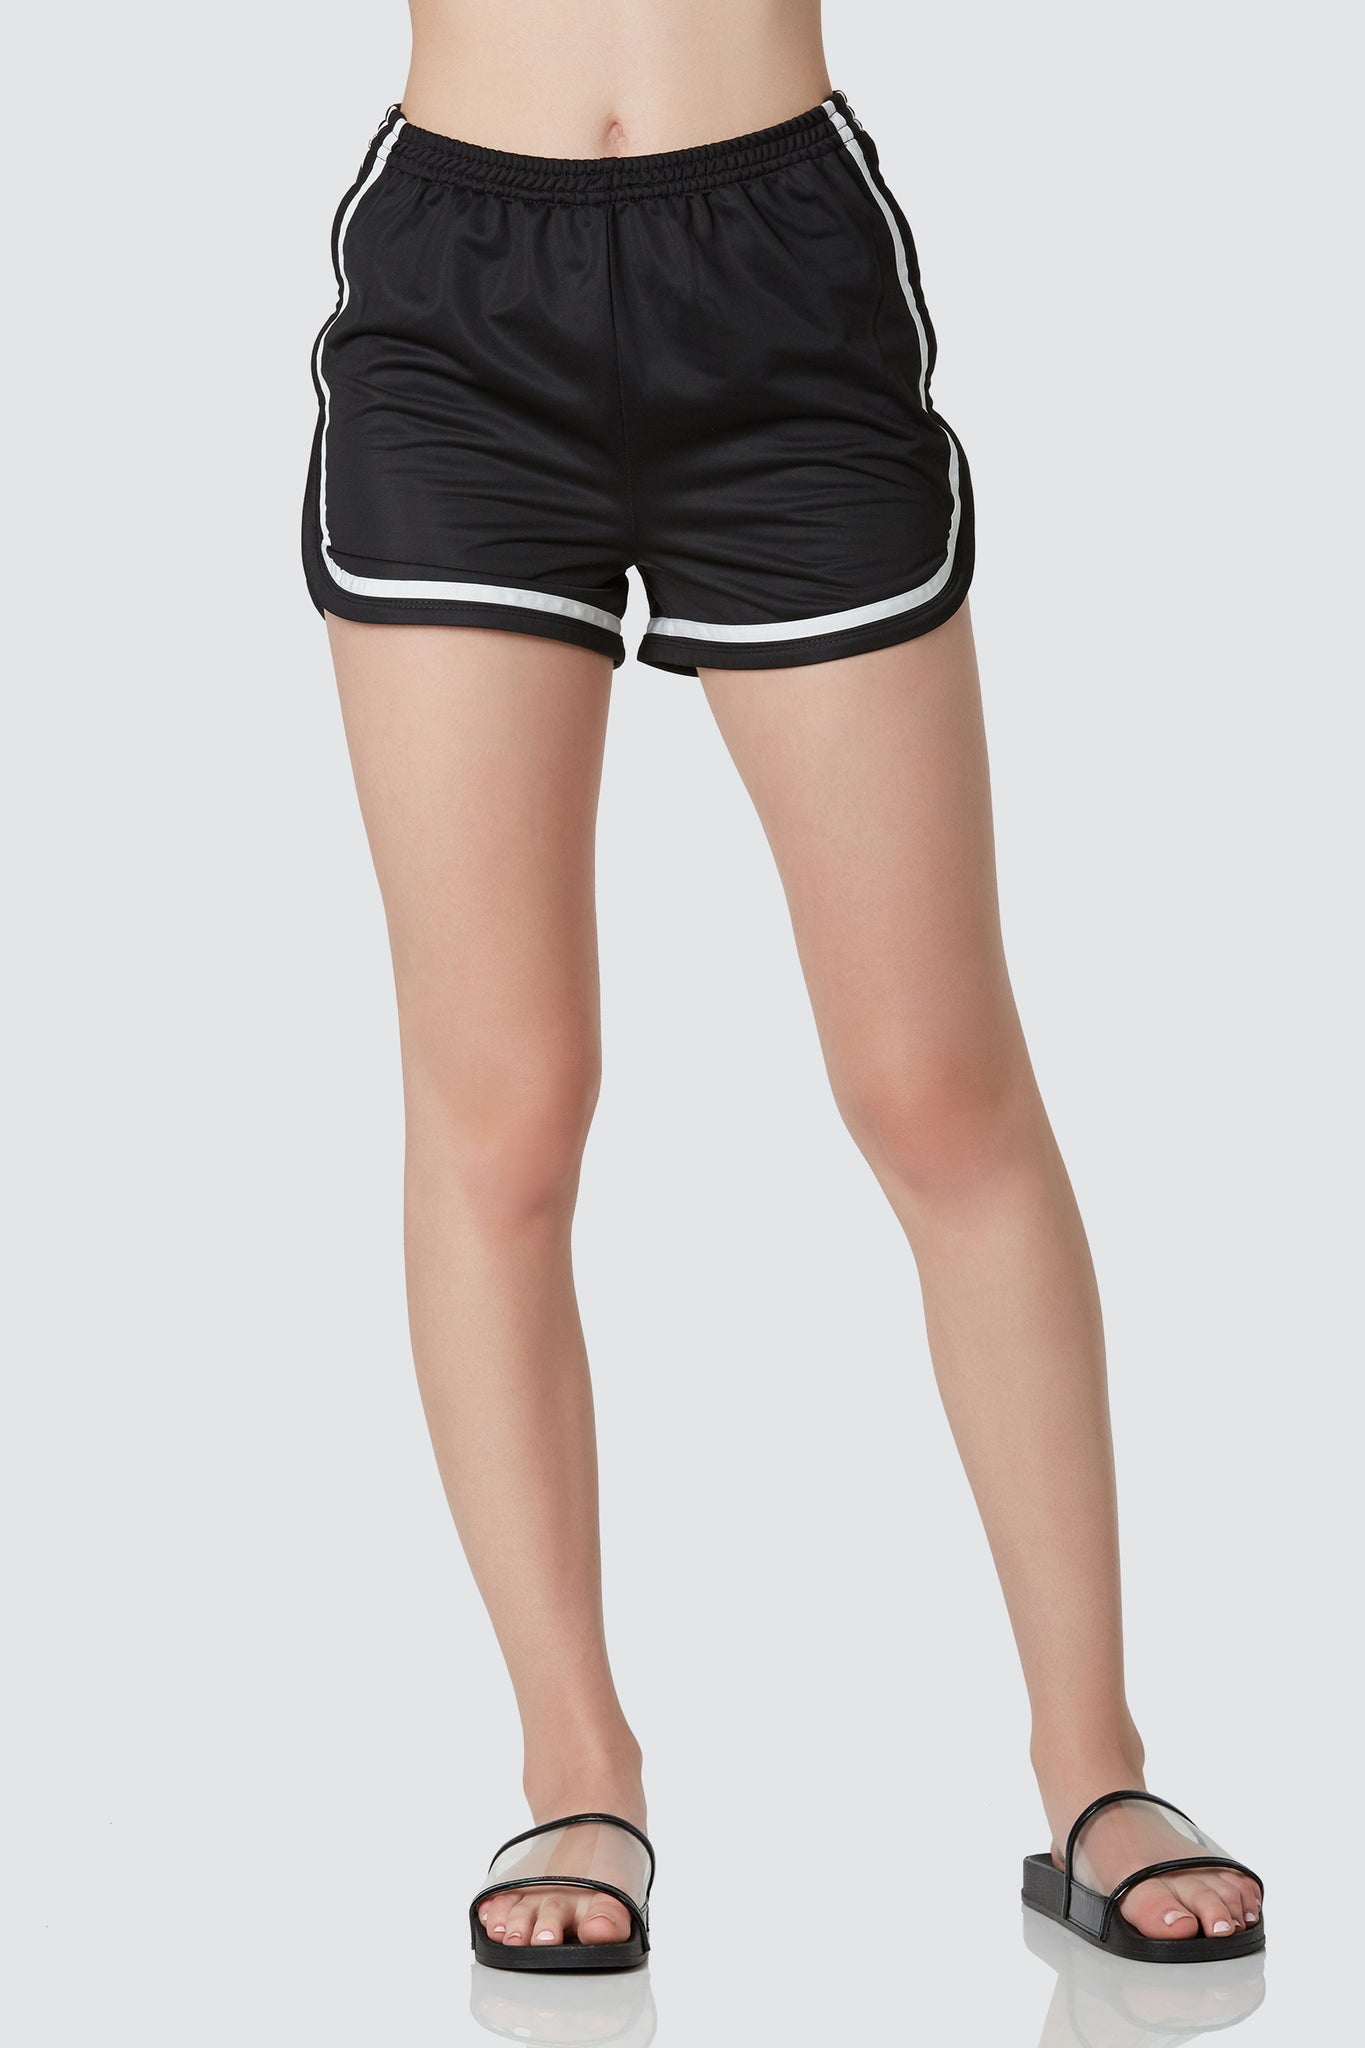 Trendy varsity shorts with contrast stripe print for an athletic vibe. Comfortable elastcized waist with curved hem finish.